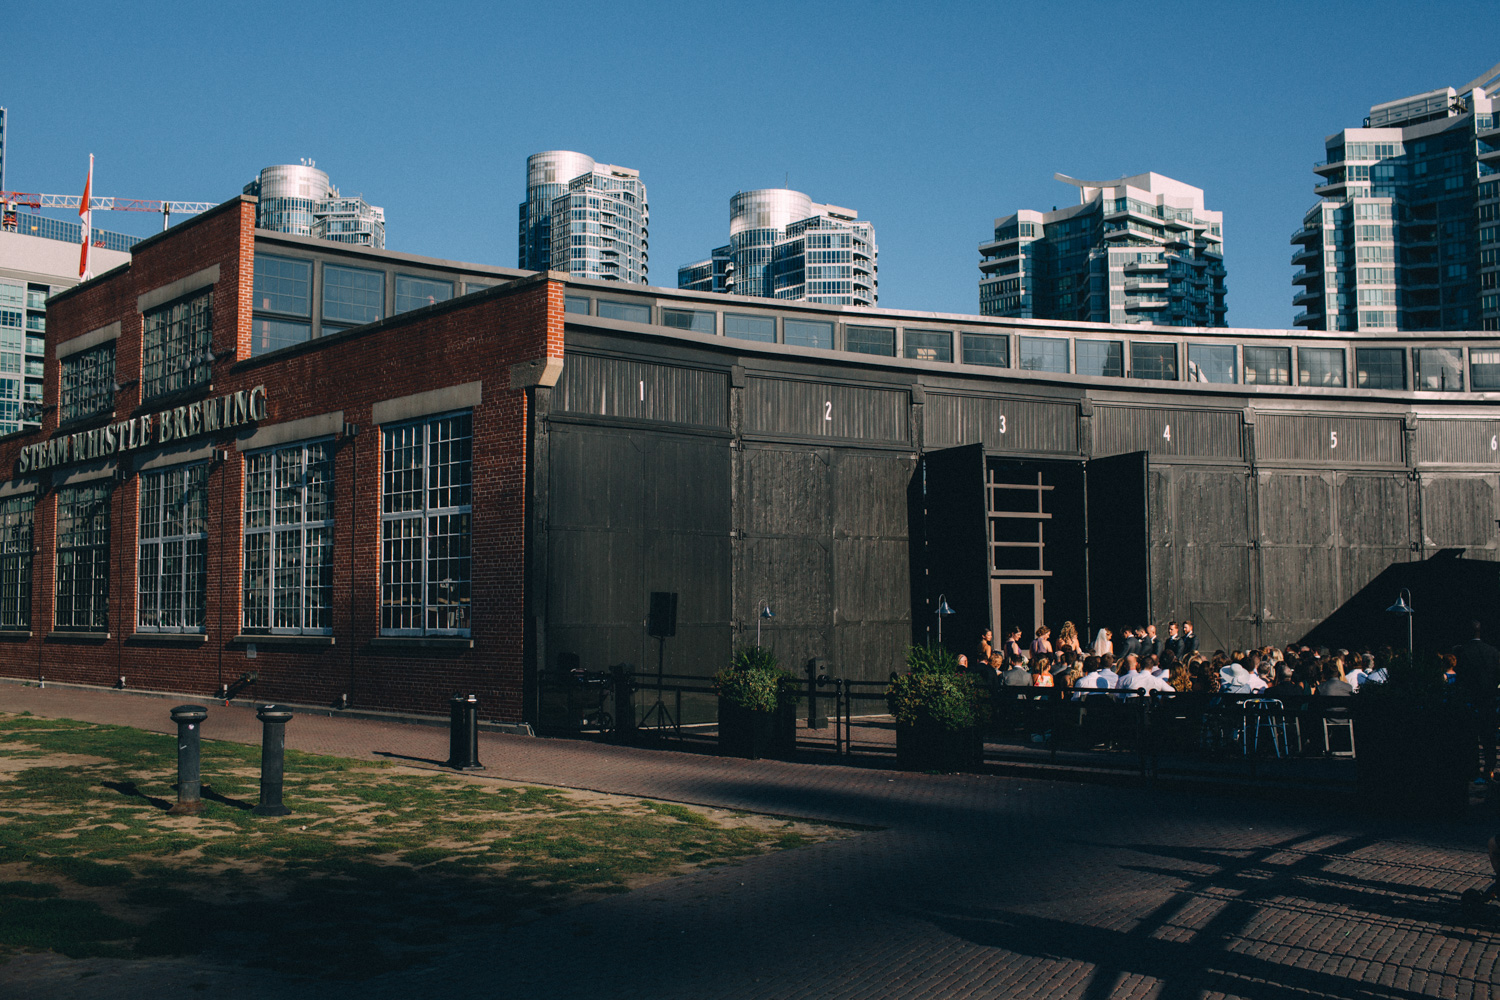 steam-whistle-brewery-wedding-photos-toronto-wedding-photography-by-sam-wong-of-artanis-collective_01037